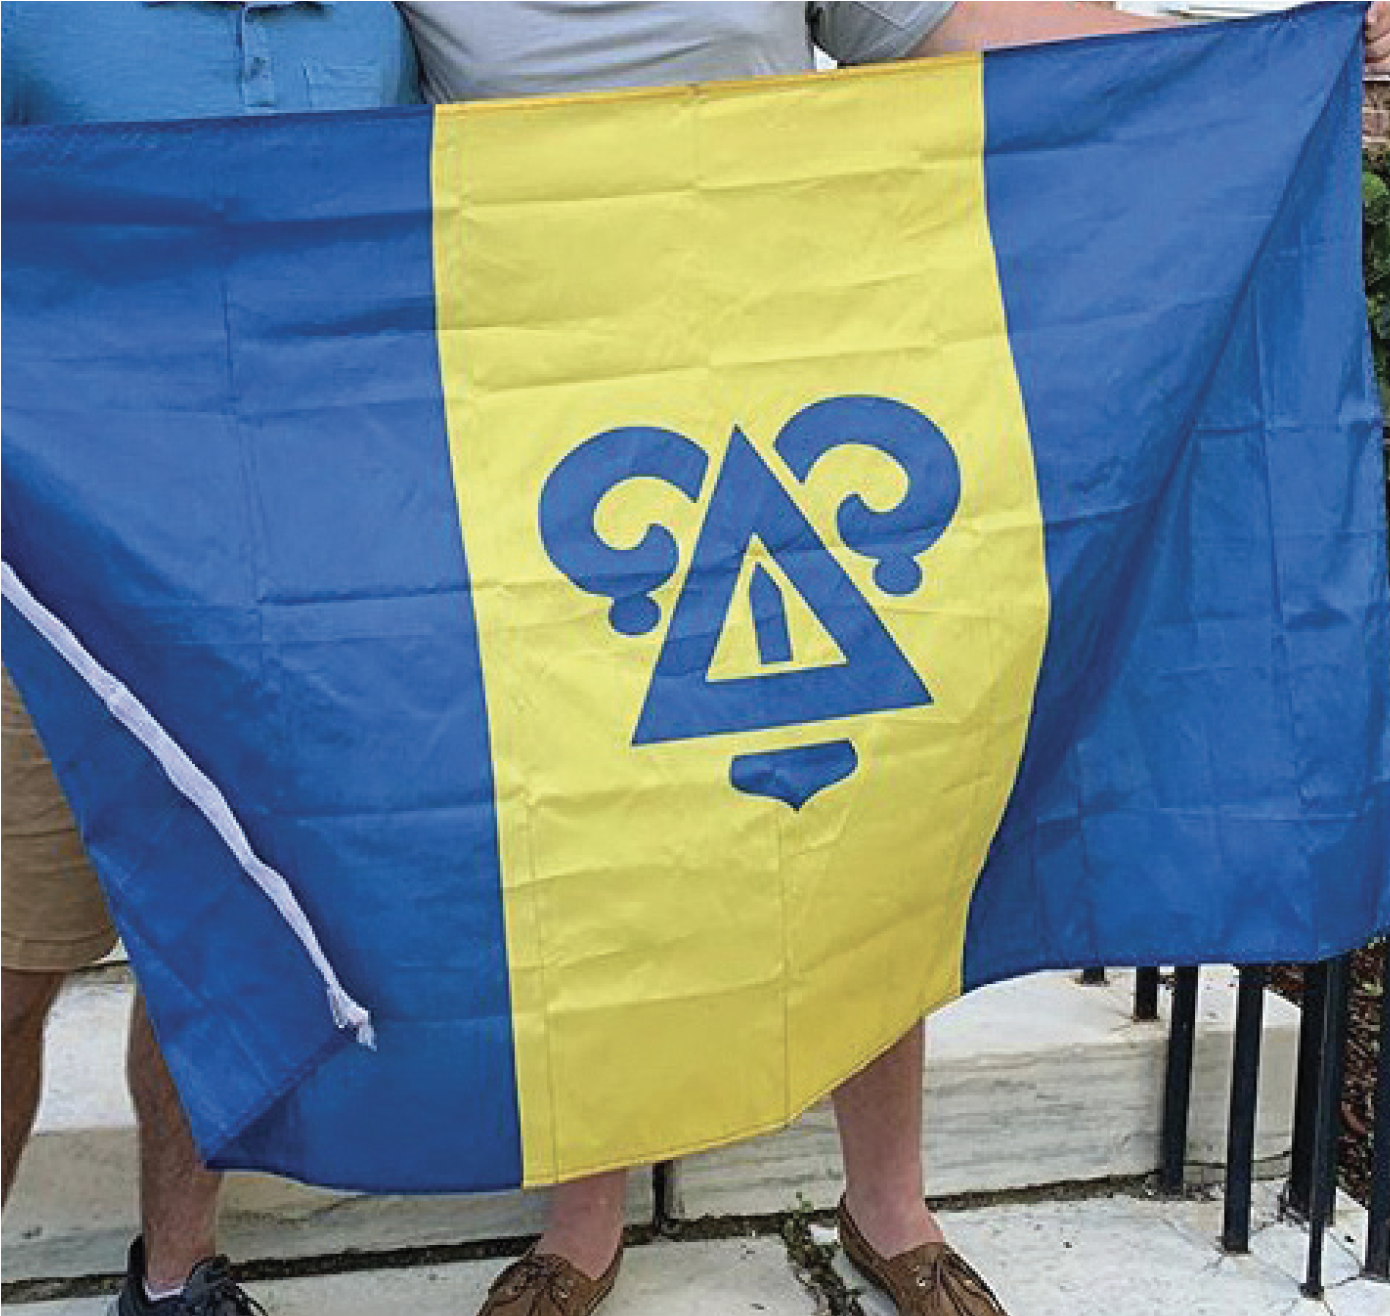 Delta Upsilon International is changing its alcohol policies in the coming years.